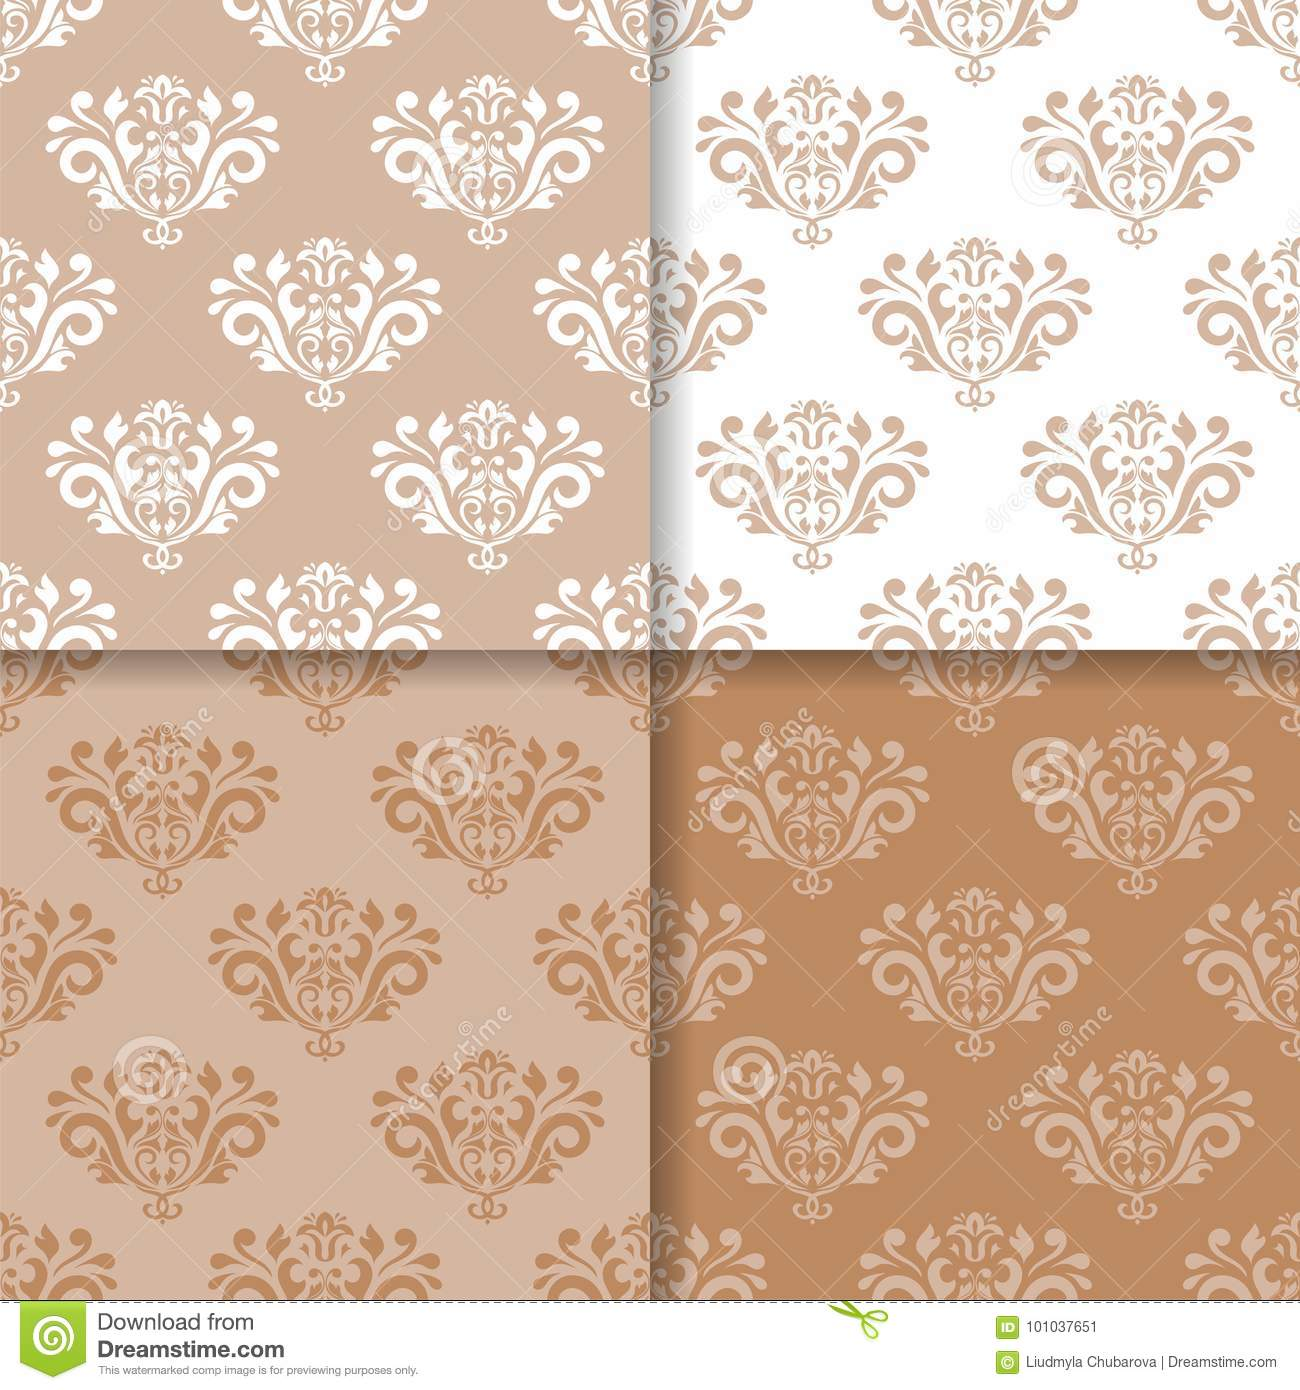 Wallpaper set of brown beige seamless patterns with floral ornaments